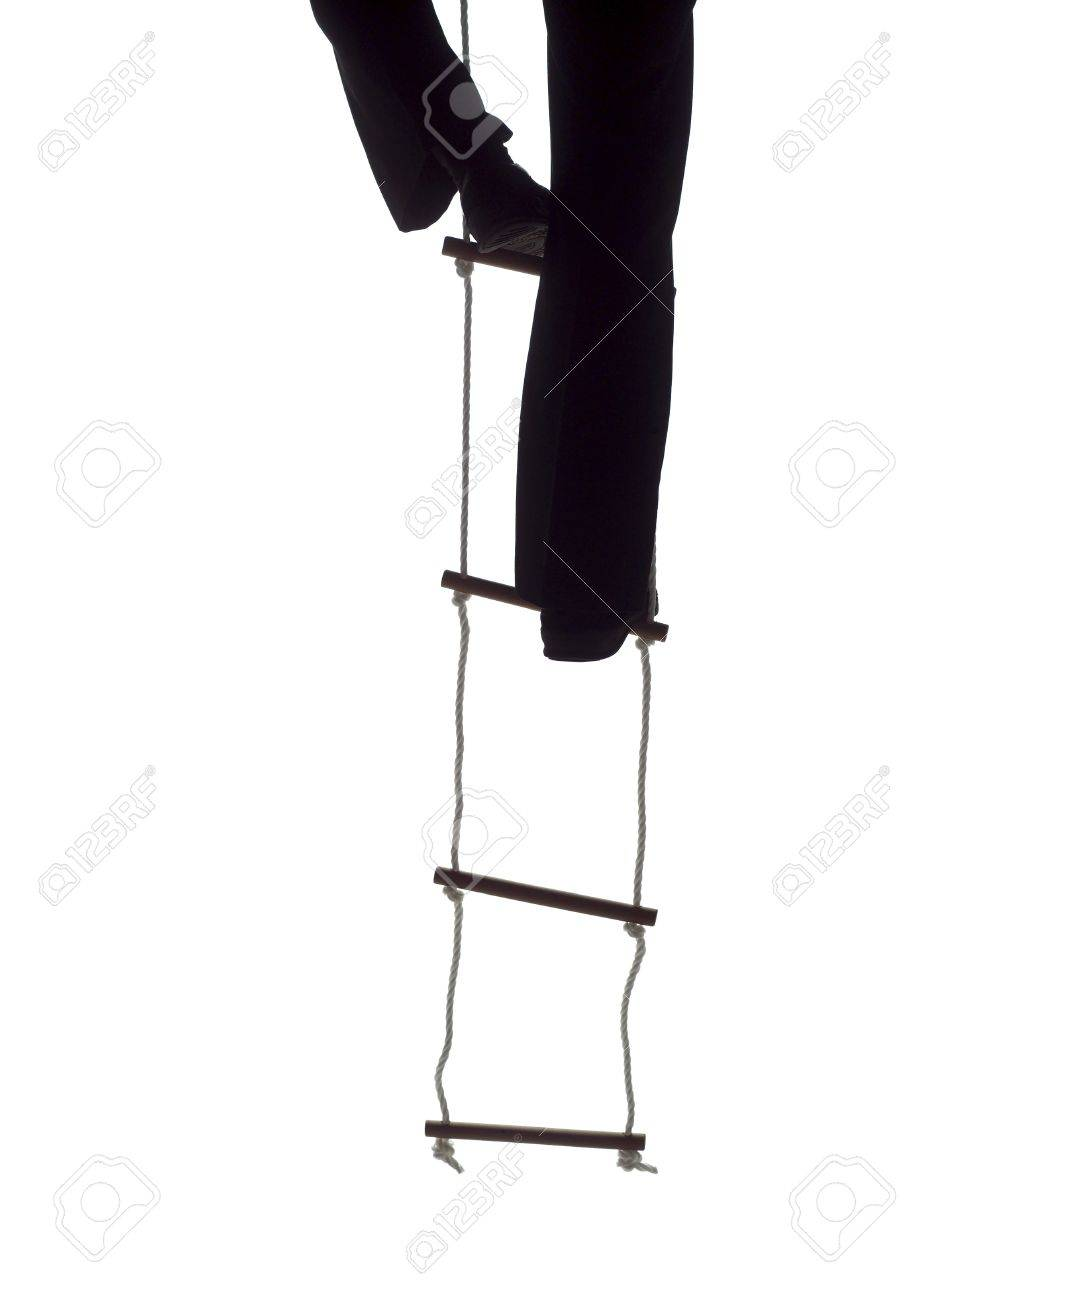 climbing up the rope ladder stock photo picture and royalty climbing up the rope ladder stock photo 12601243